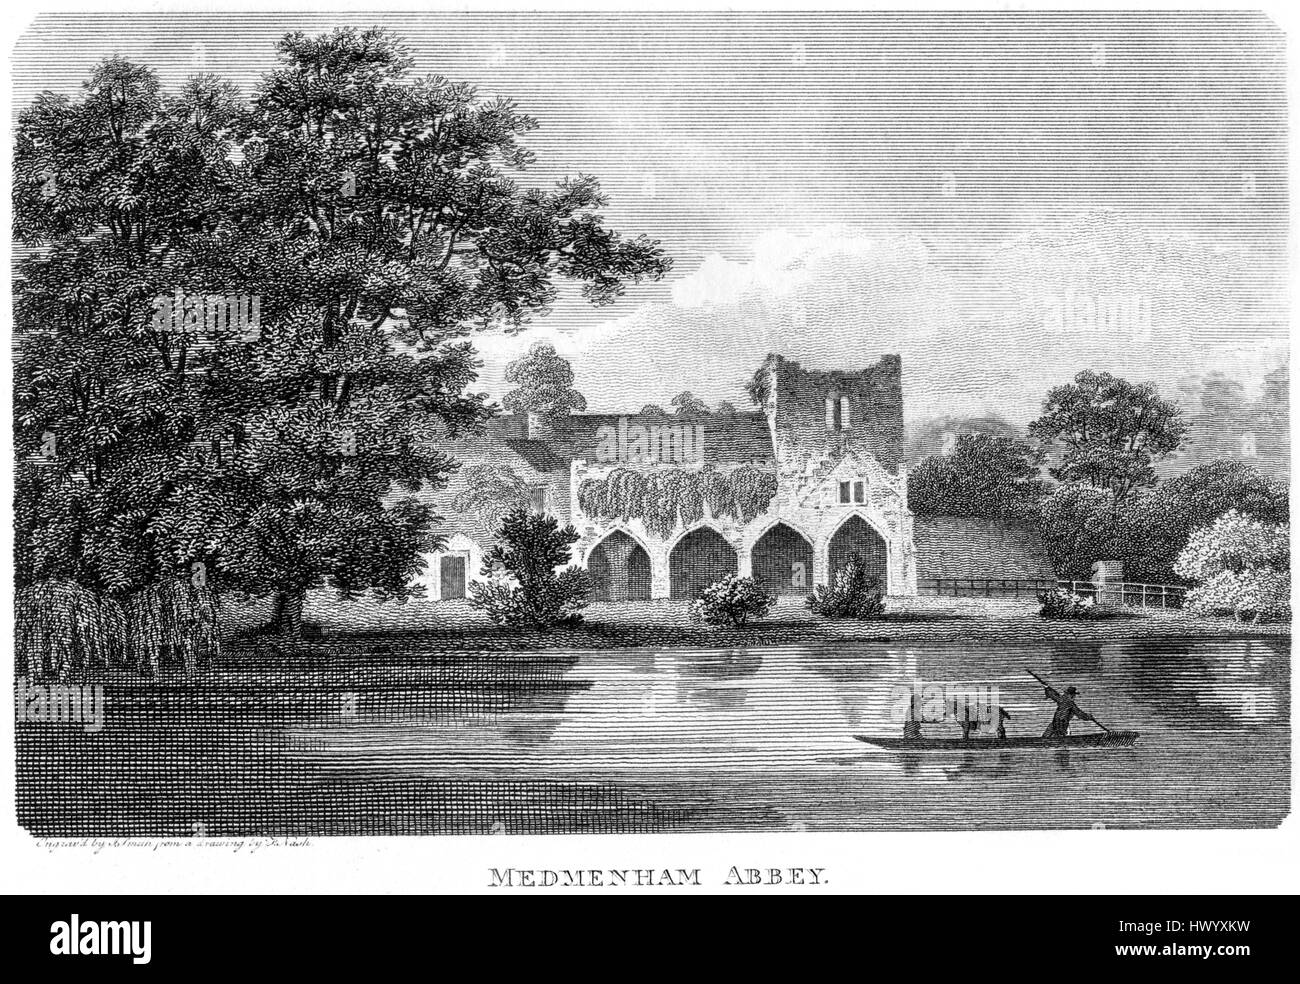 An engraving of Medmenham Abbey, Buckinghamshire scanned at high resolution from a book printed in 1812.  .Believed Stock Photo